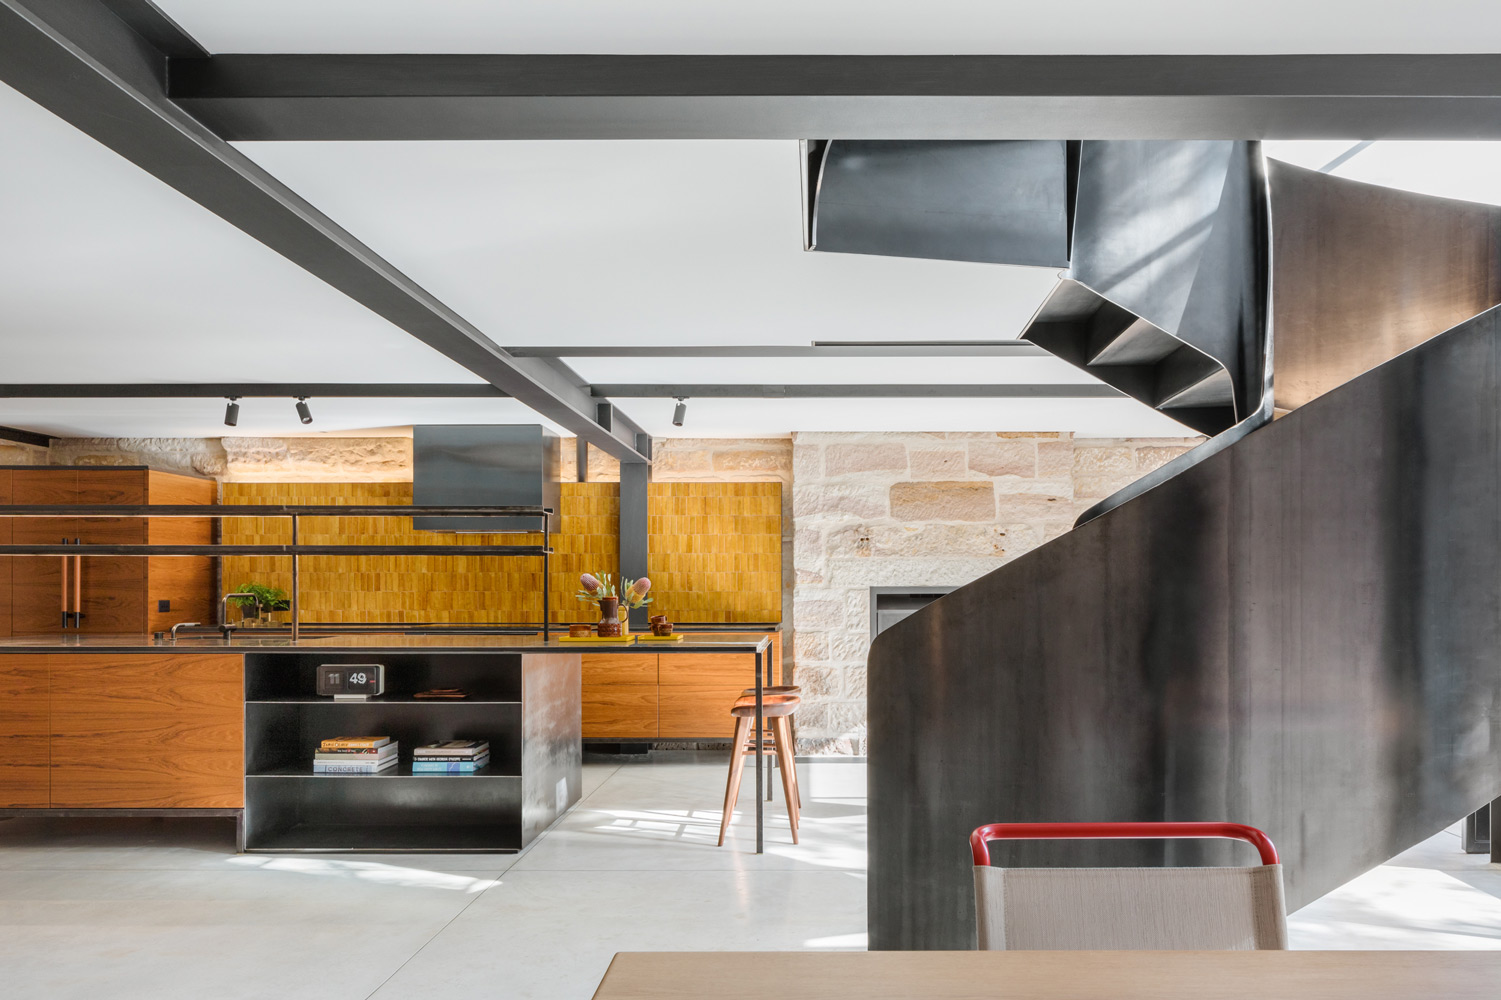 Integrated Appliances By Fisher & Paykel Were Key To Creating This Effect That Allows The Joinery To Be Viewed As Simple, Elega